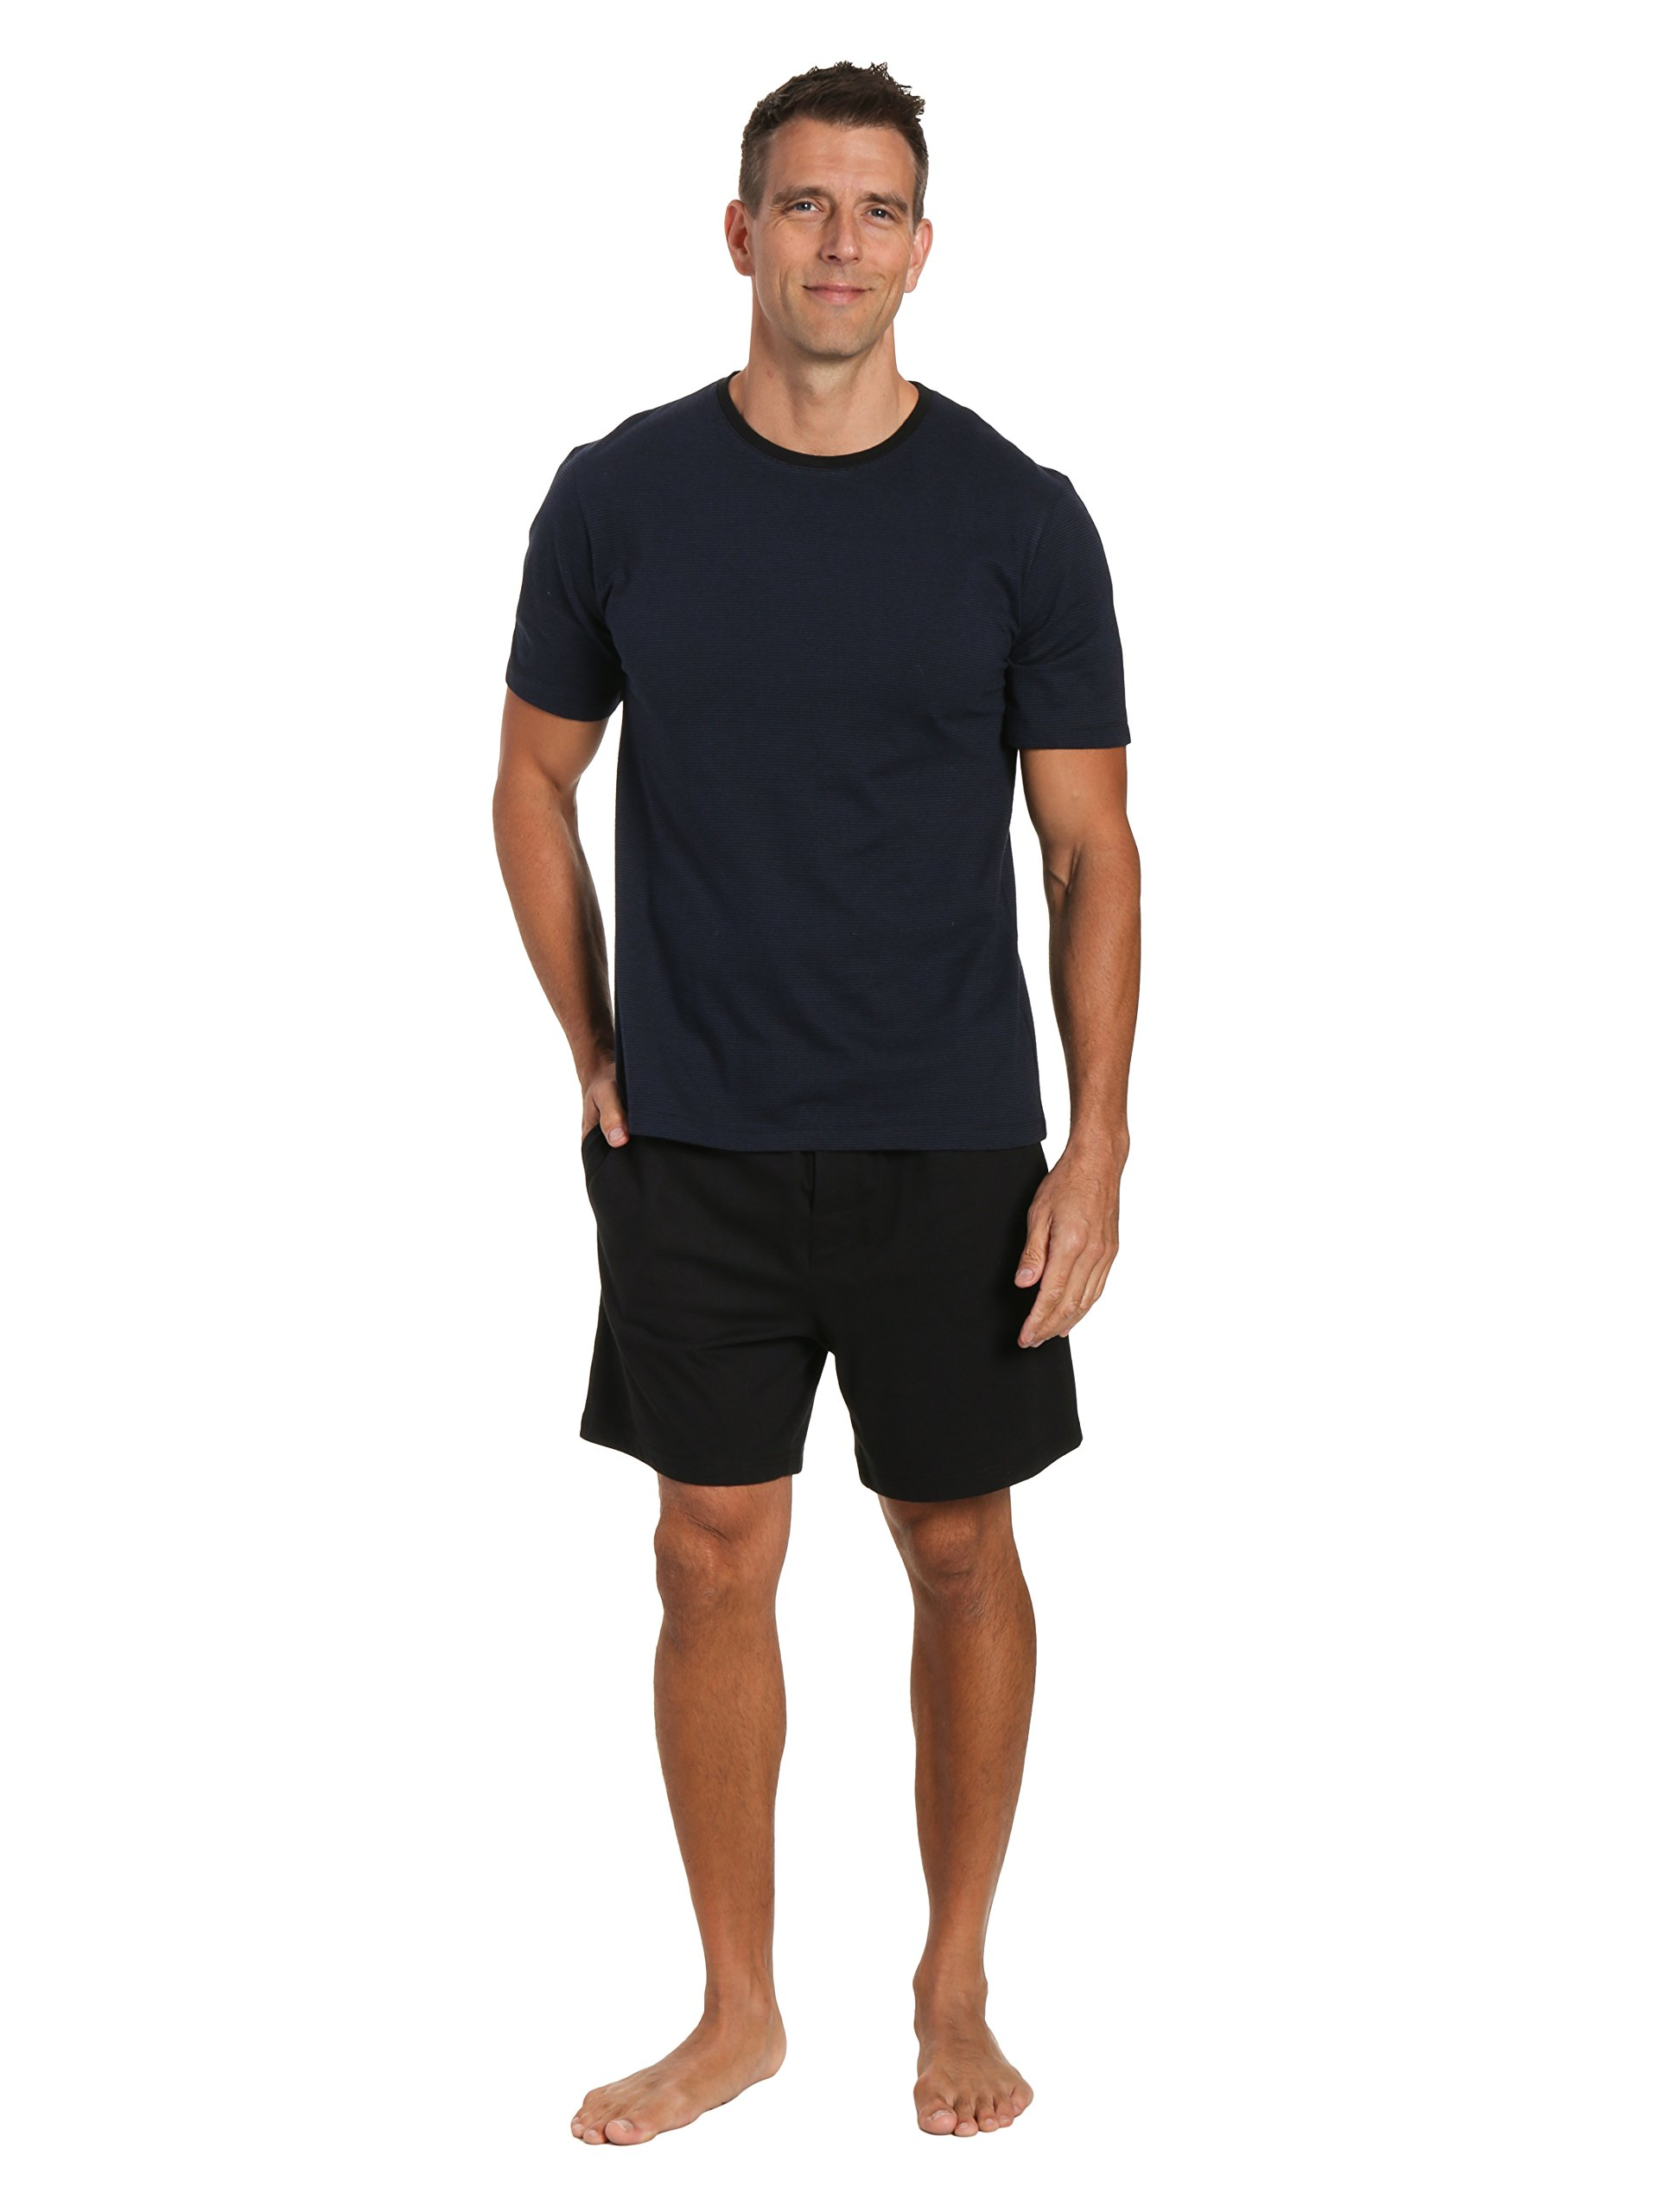 Twin Boat Mens Knit Short Lounge Set - Black Short with Stripe Navy Top - Large